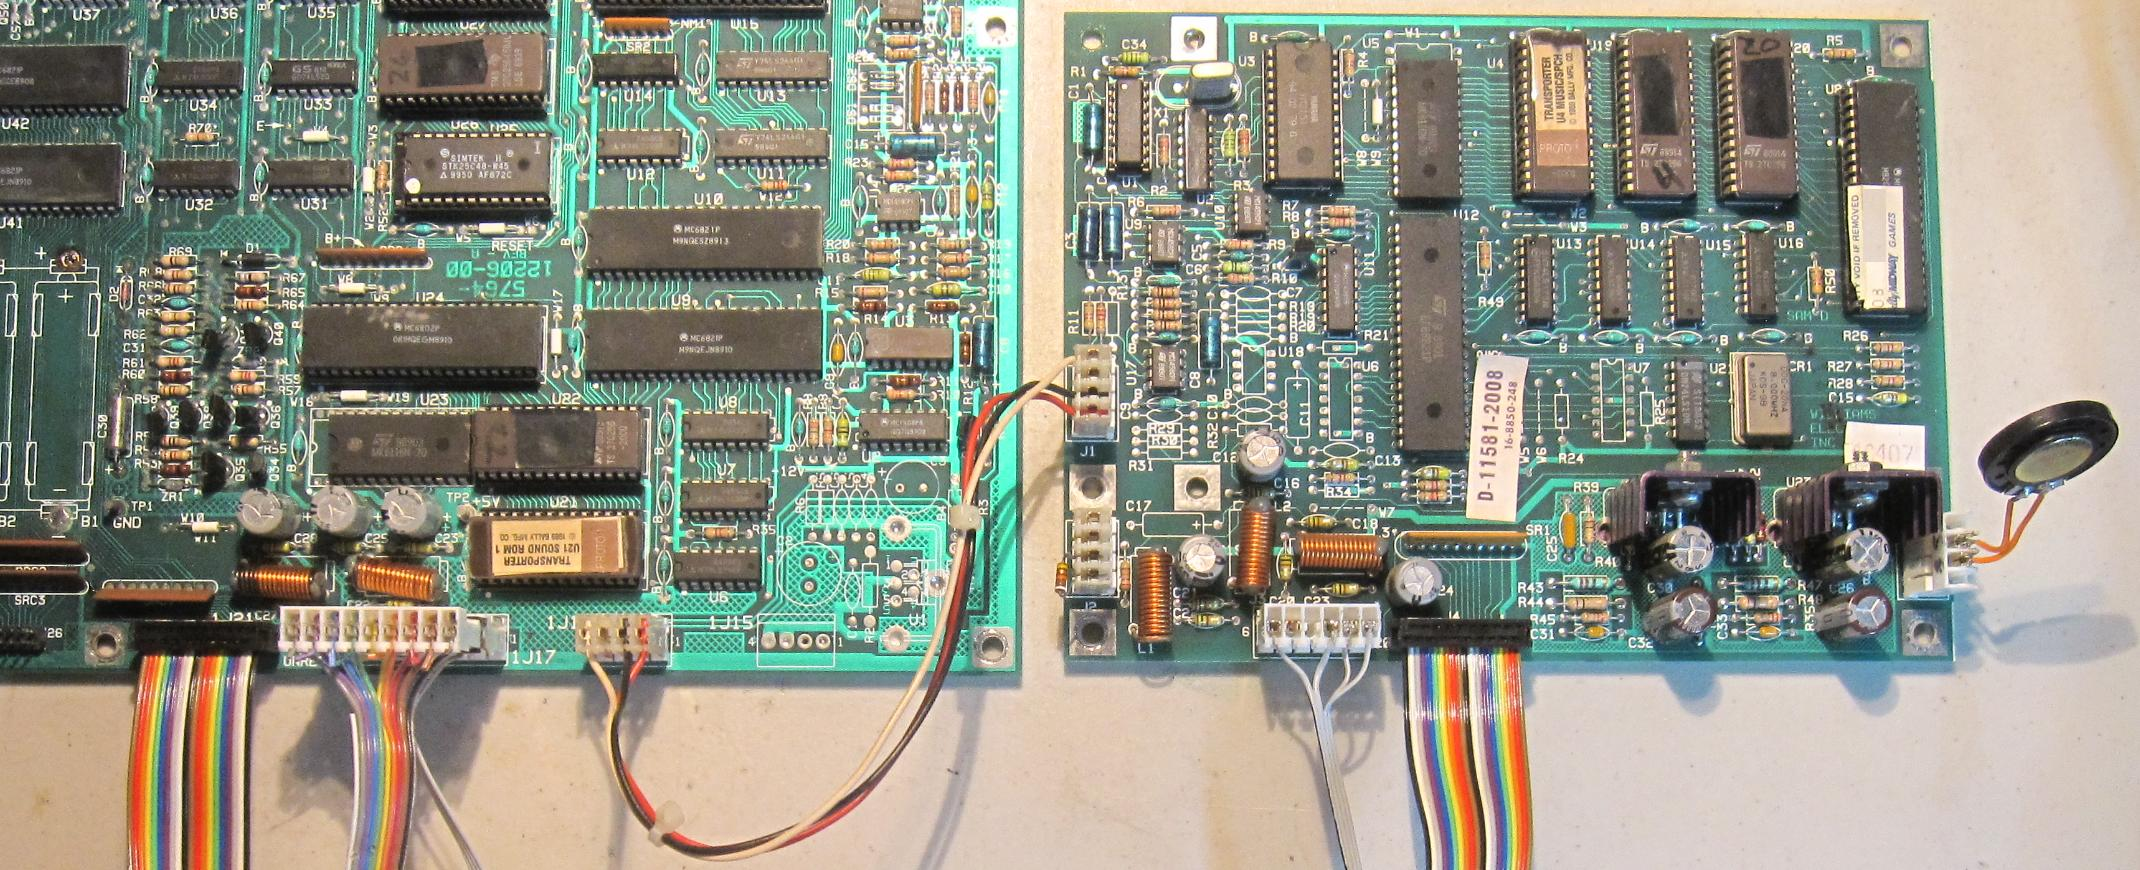 Williams System 9 11 Cpu Board Repair How To Check A Circuit Sound Test